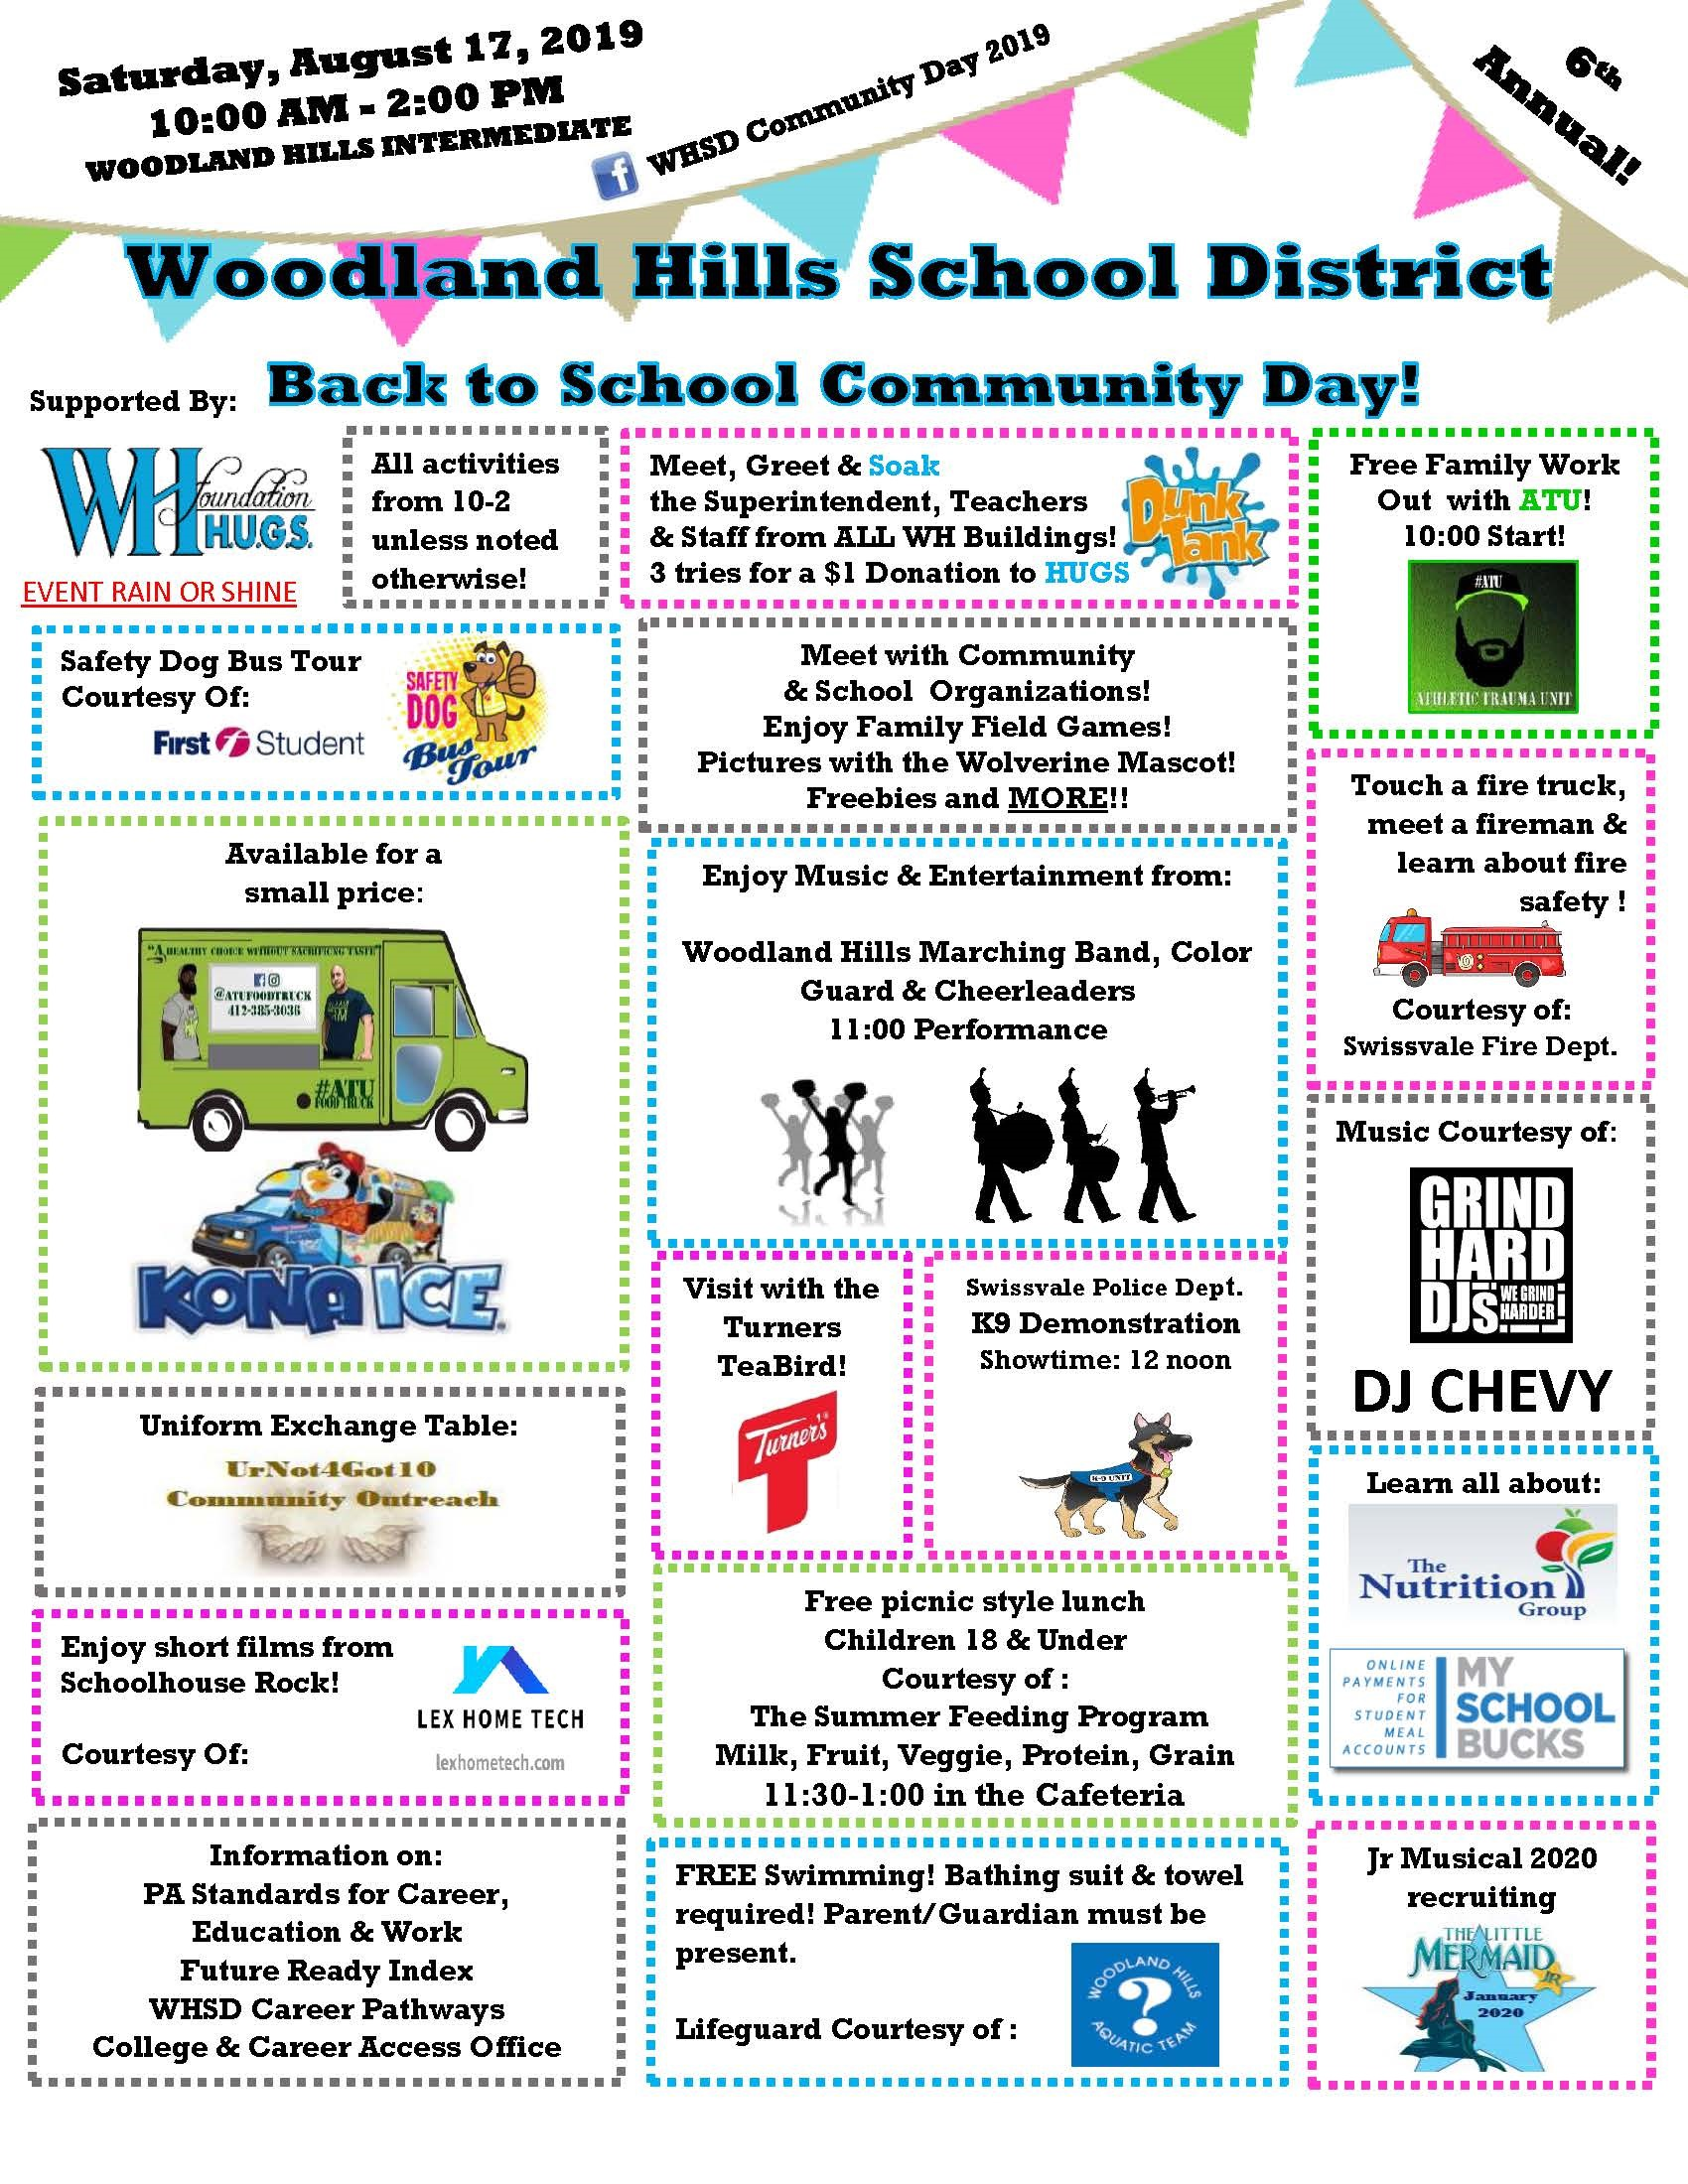 The 6th Annual Woodland Hills School District Community Day